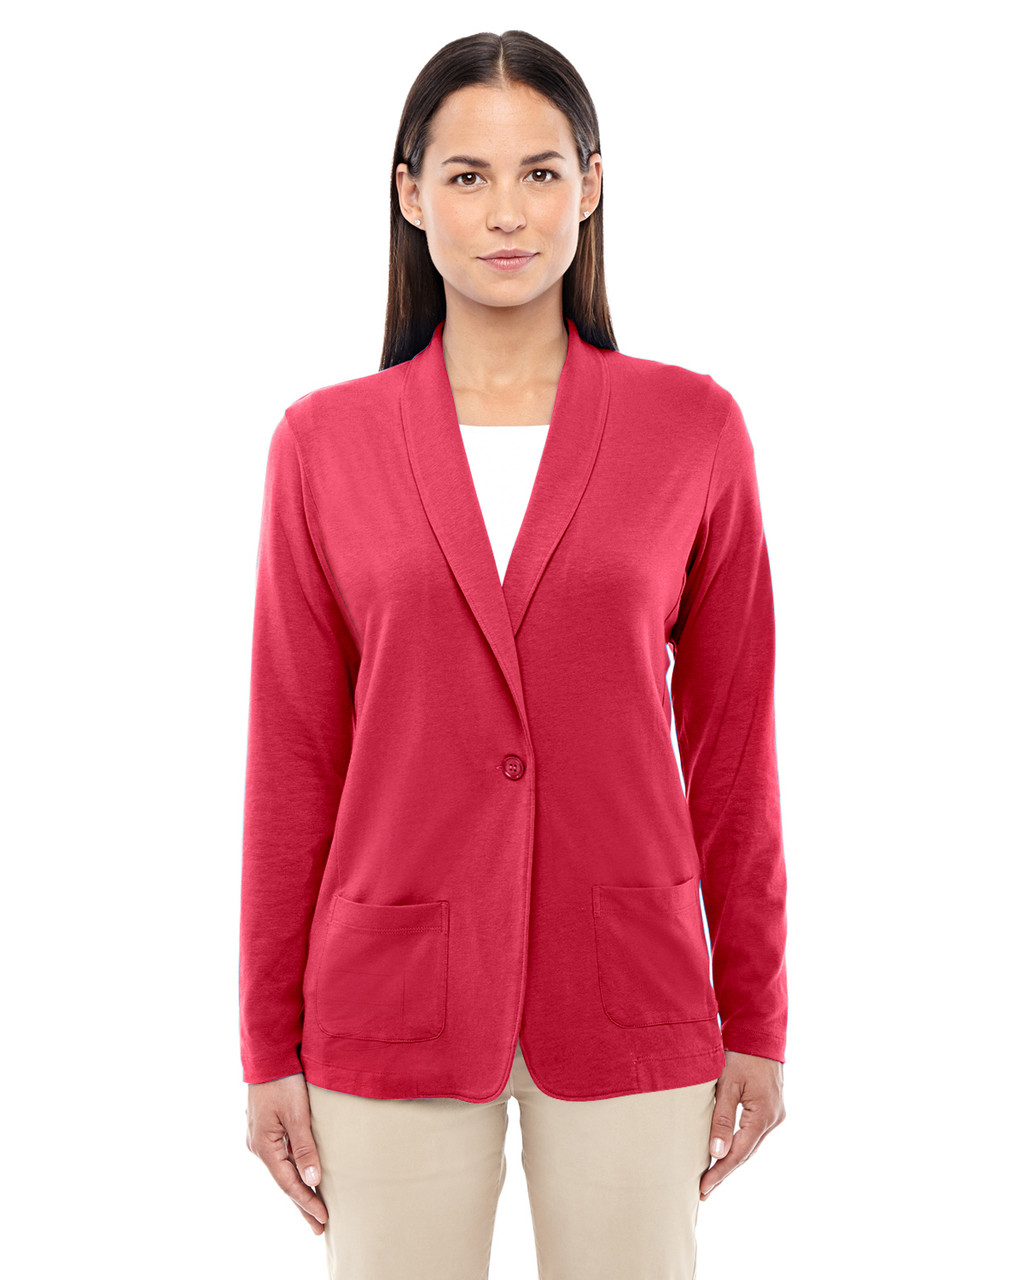 Red - DP462W Devon & Jones Ladies' Perfect Fit Shawl Collar Cardigan